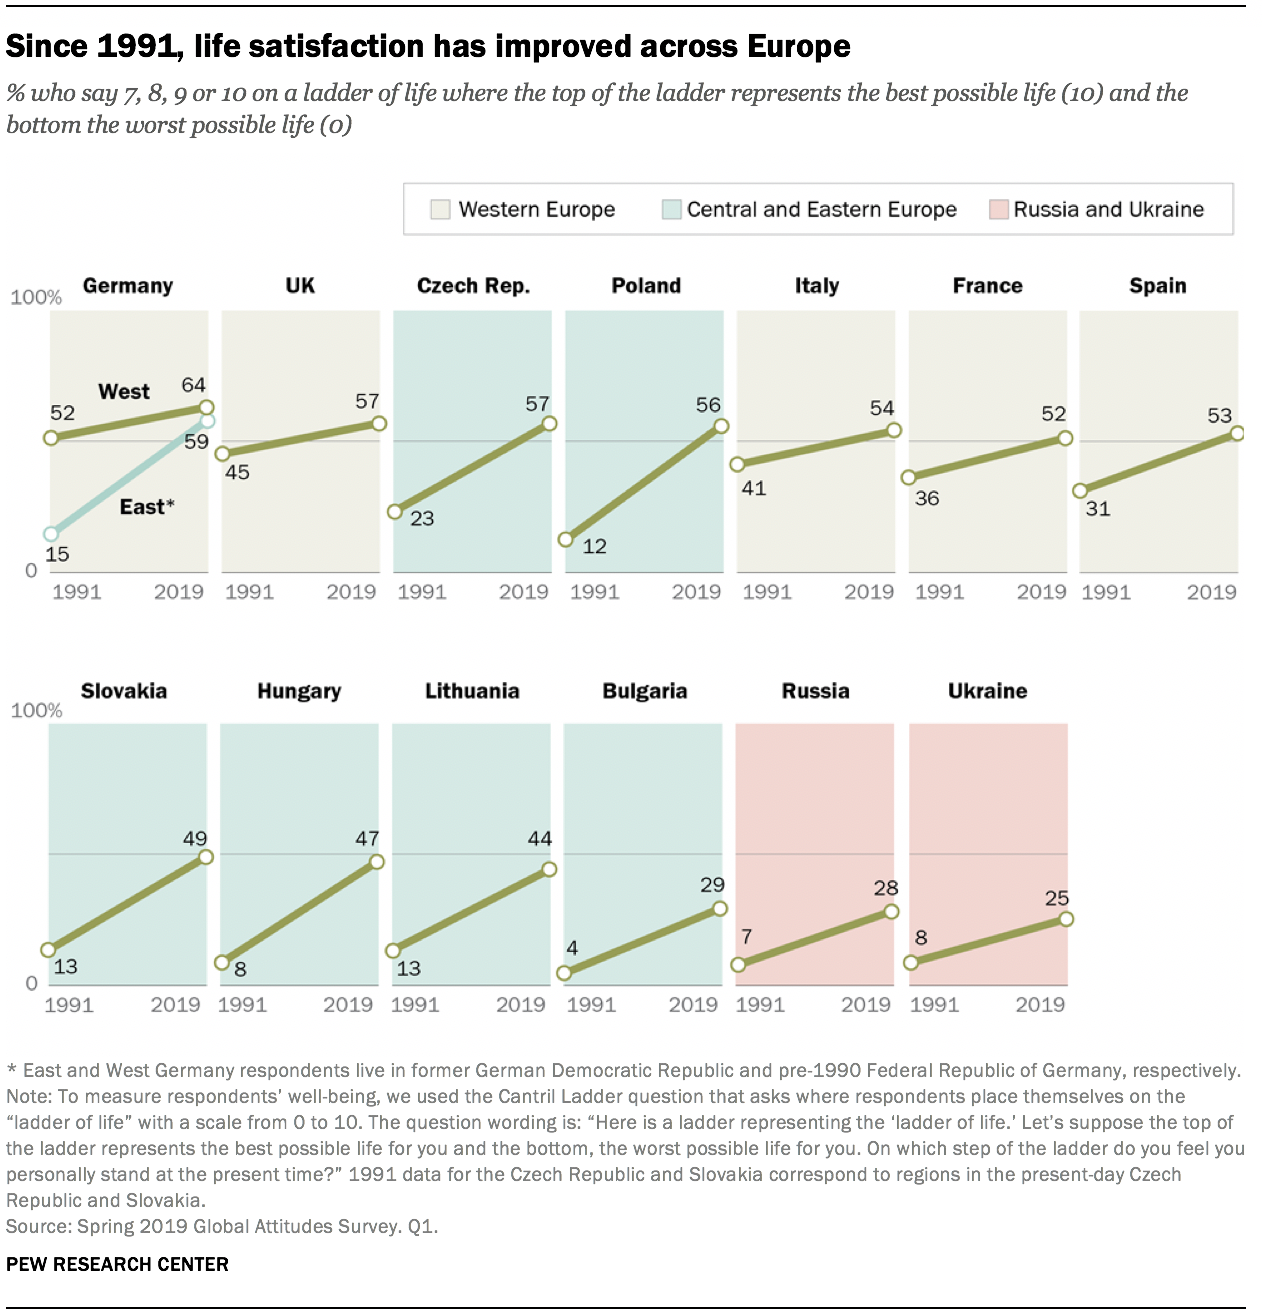 Since 1991, life satisfaction has improved across Europe